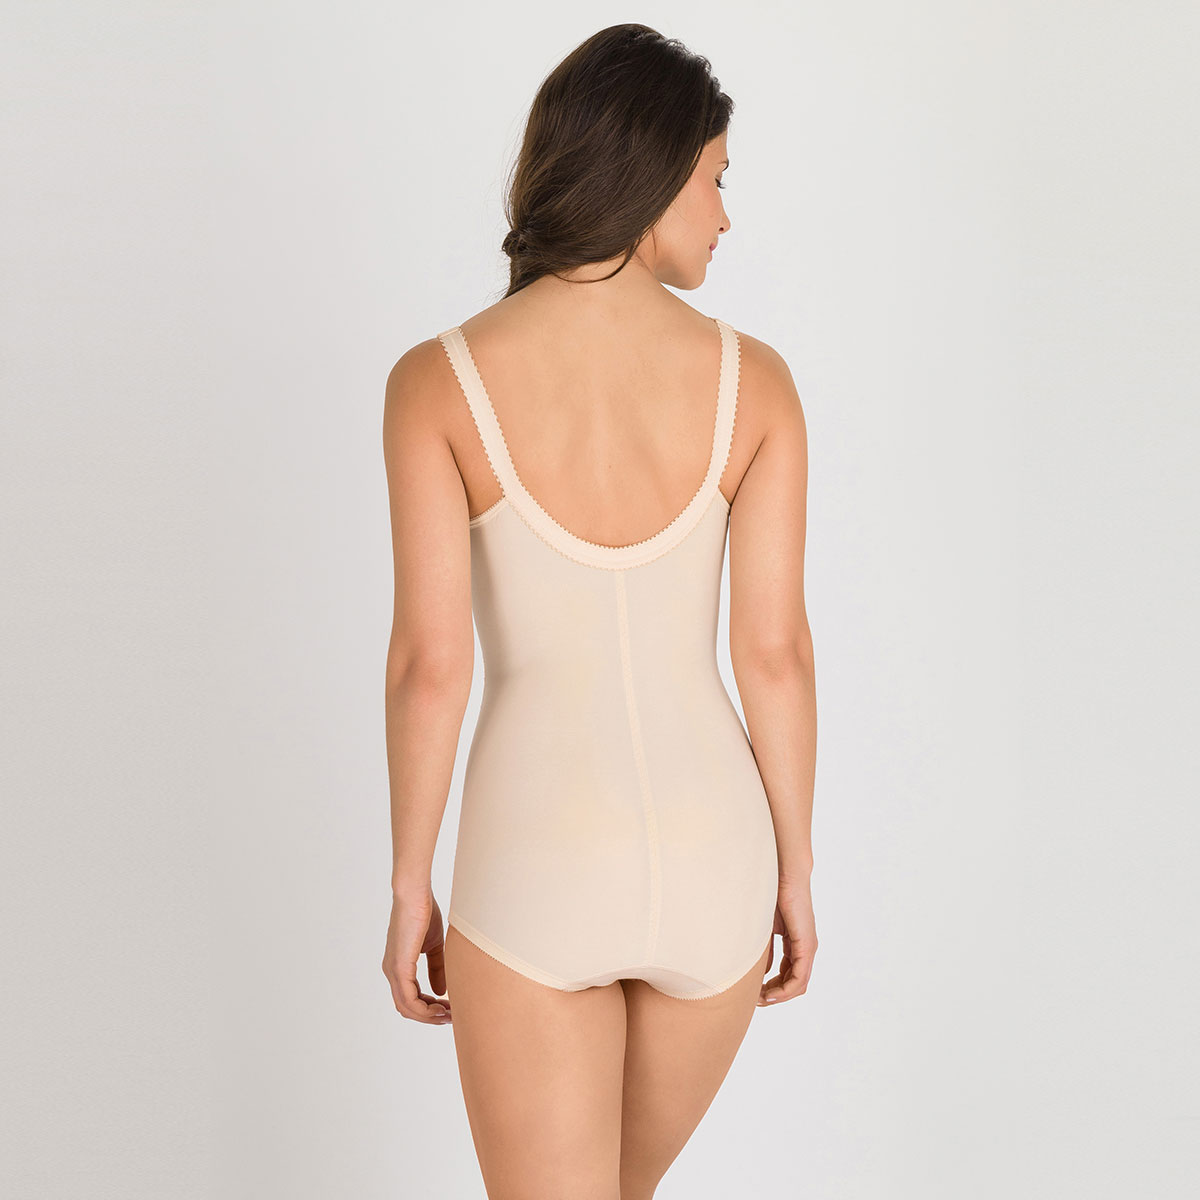 All-in-one girdle in beige – I Can't Believe It's A Girdle, , PLAYTEX